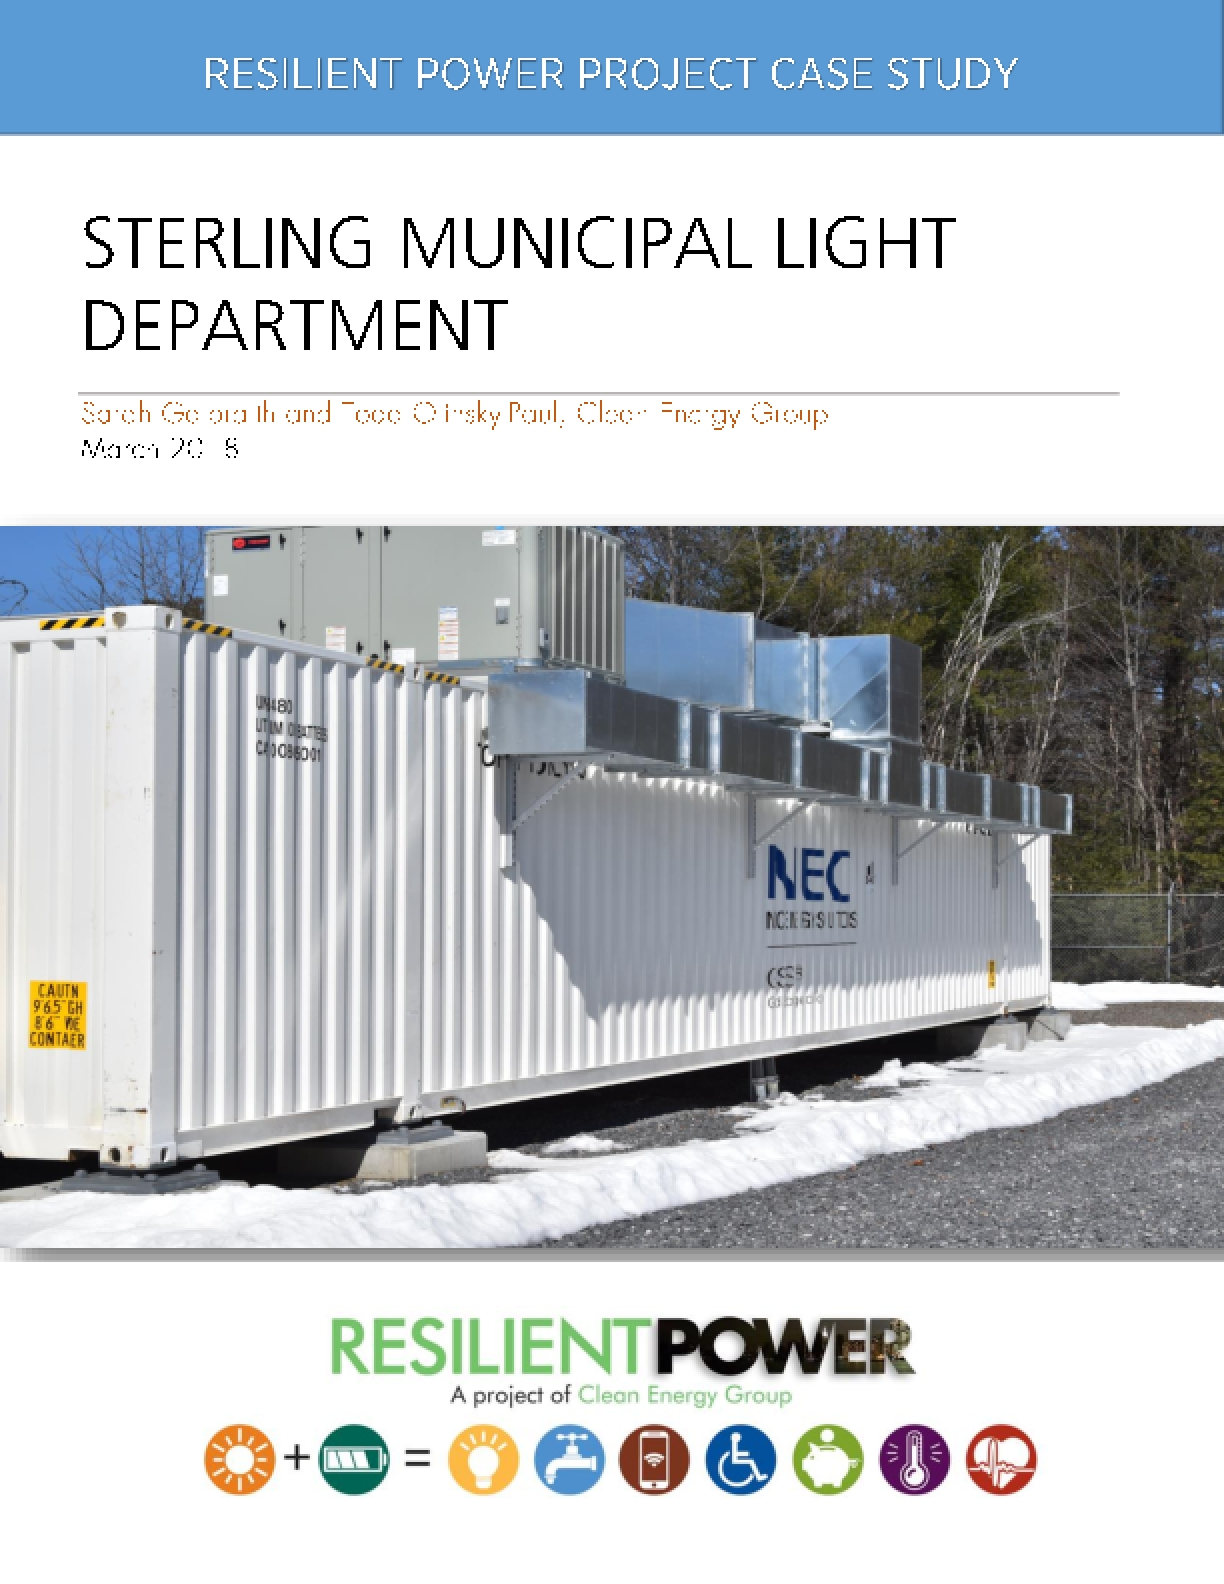 Resilient Power Project Case Study: Sterling Municipal Light Department